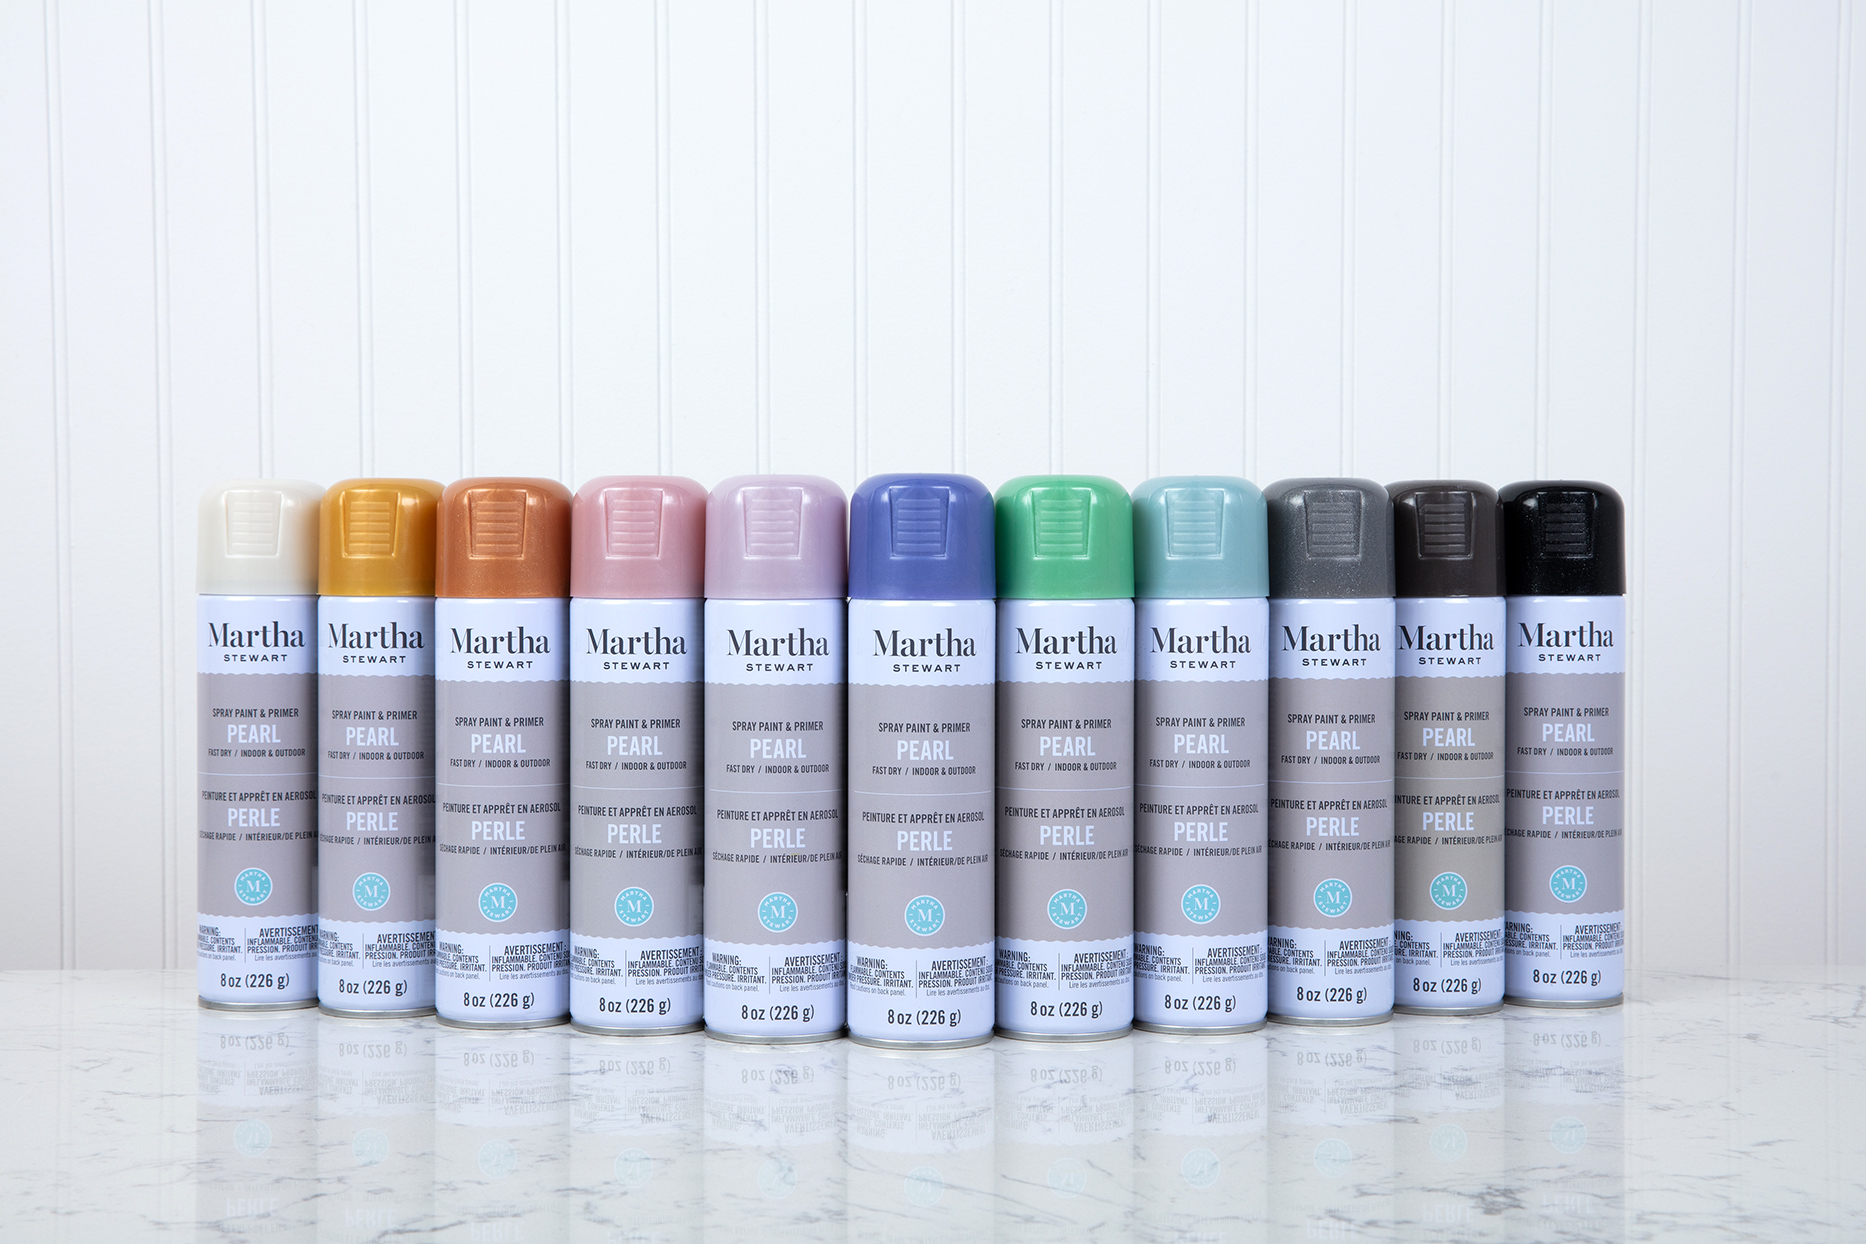 martha stewart spray paint in color order